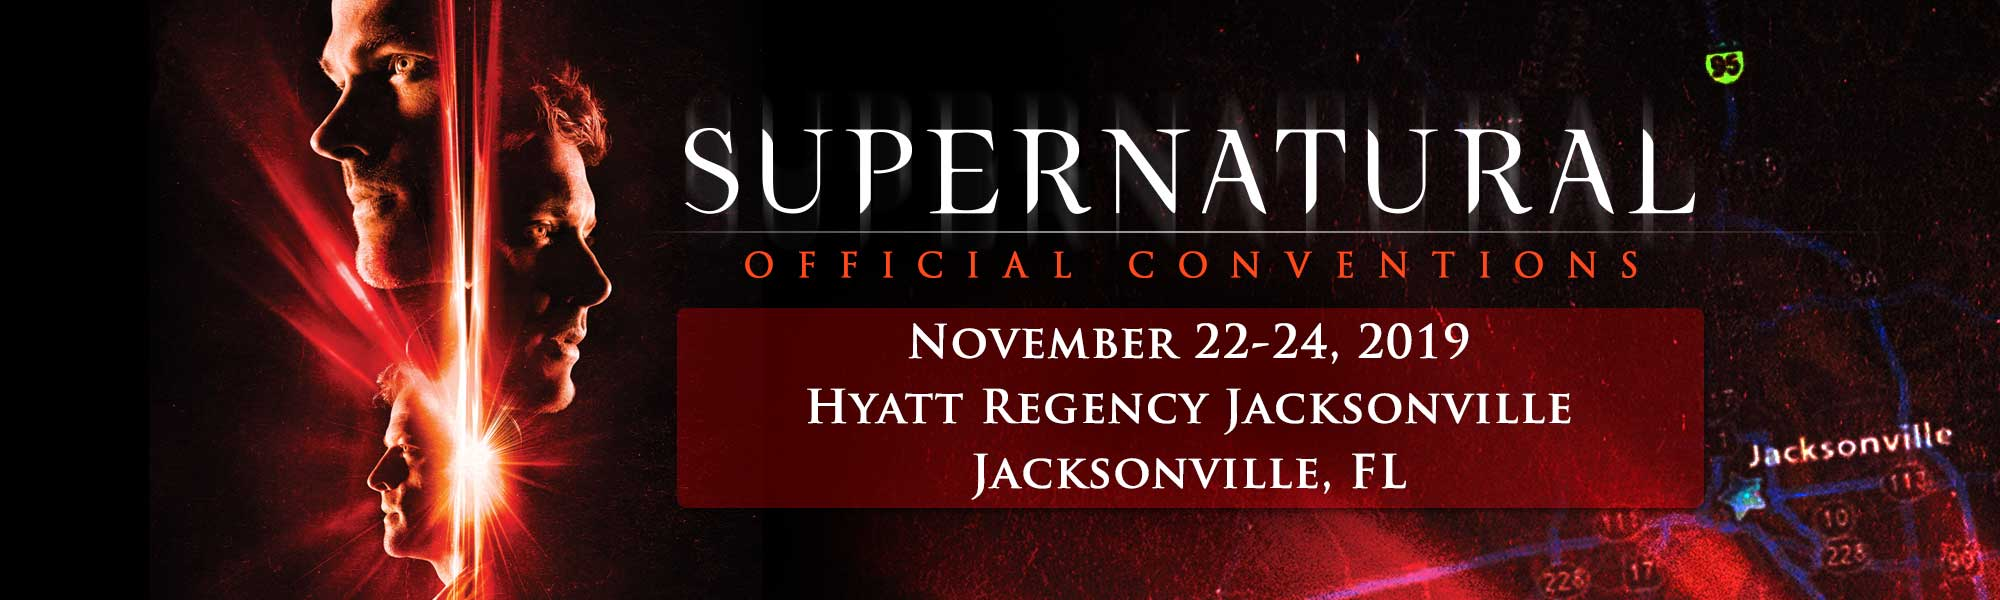 Creation Entertainment's Supernatural Offical Convention in